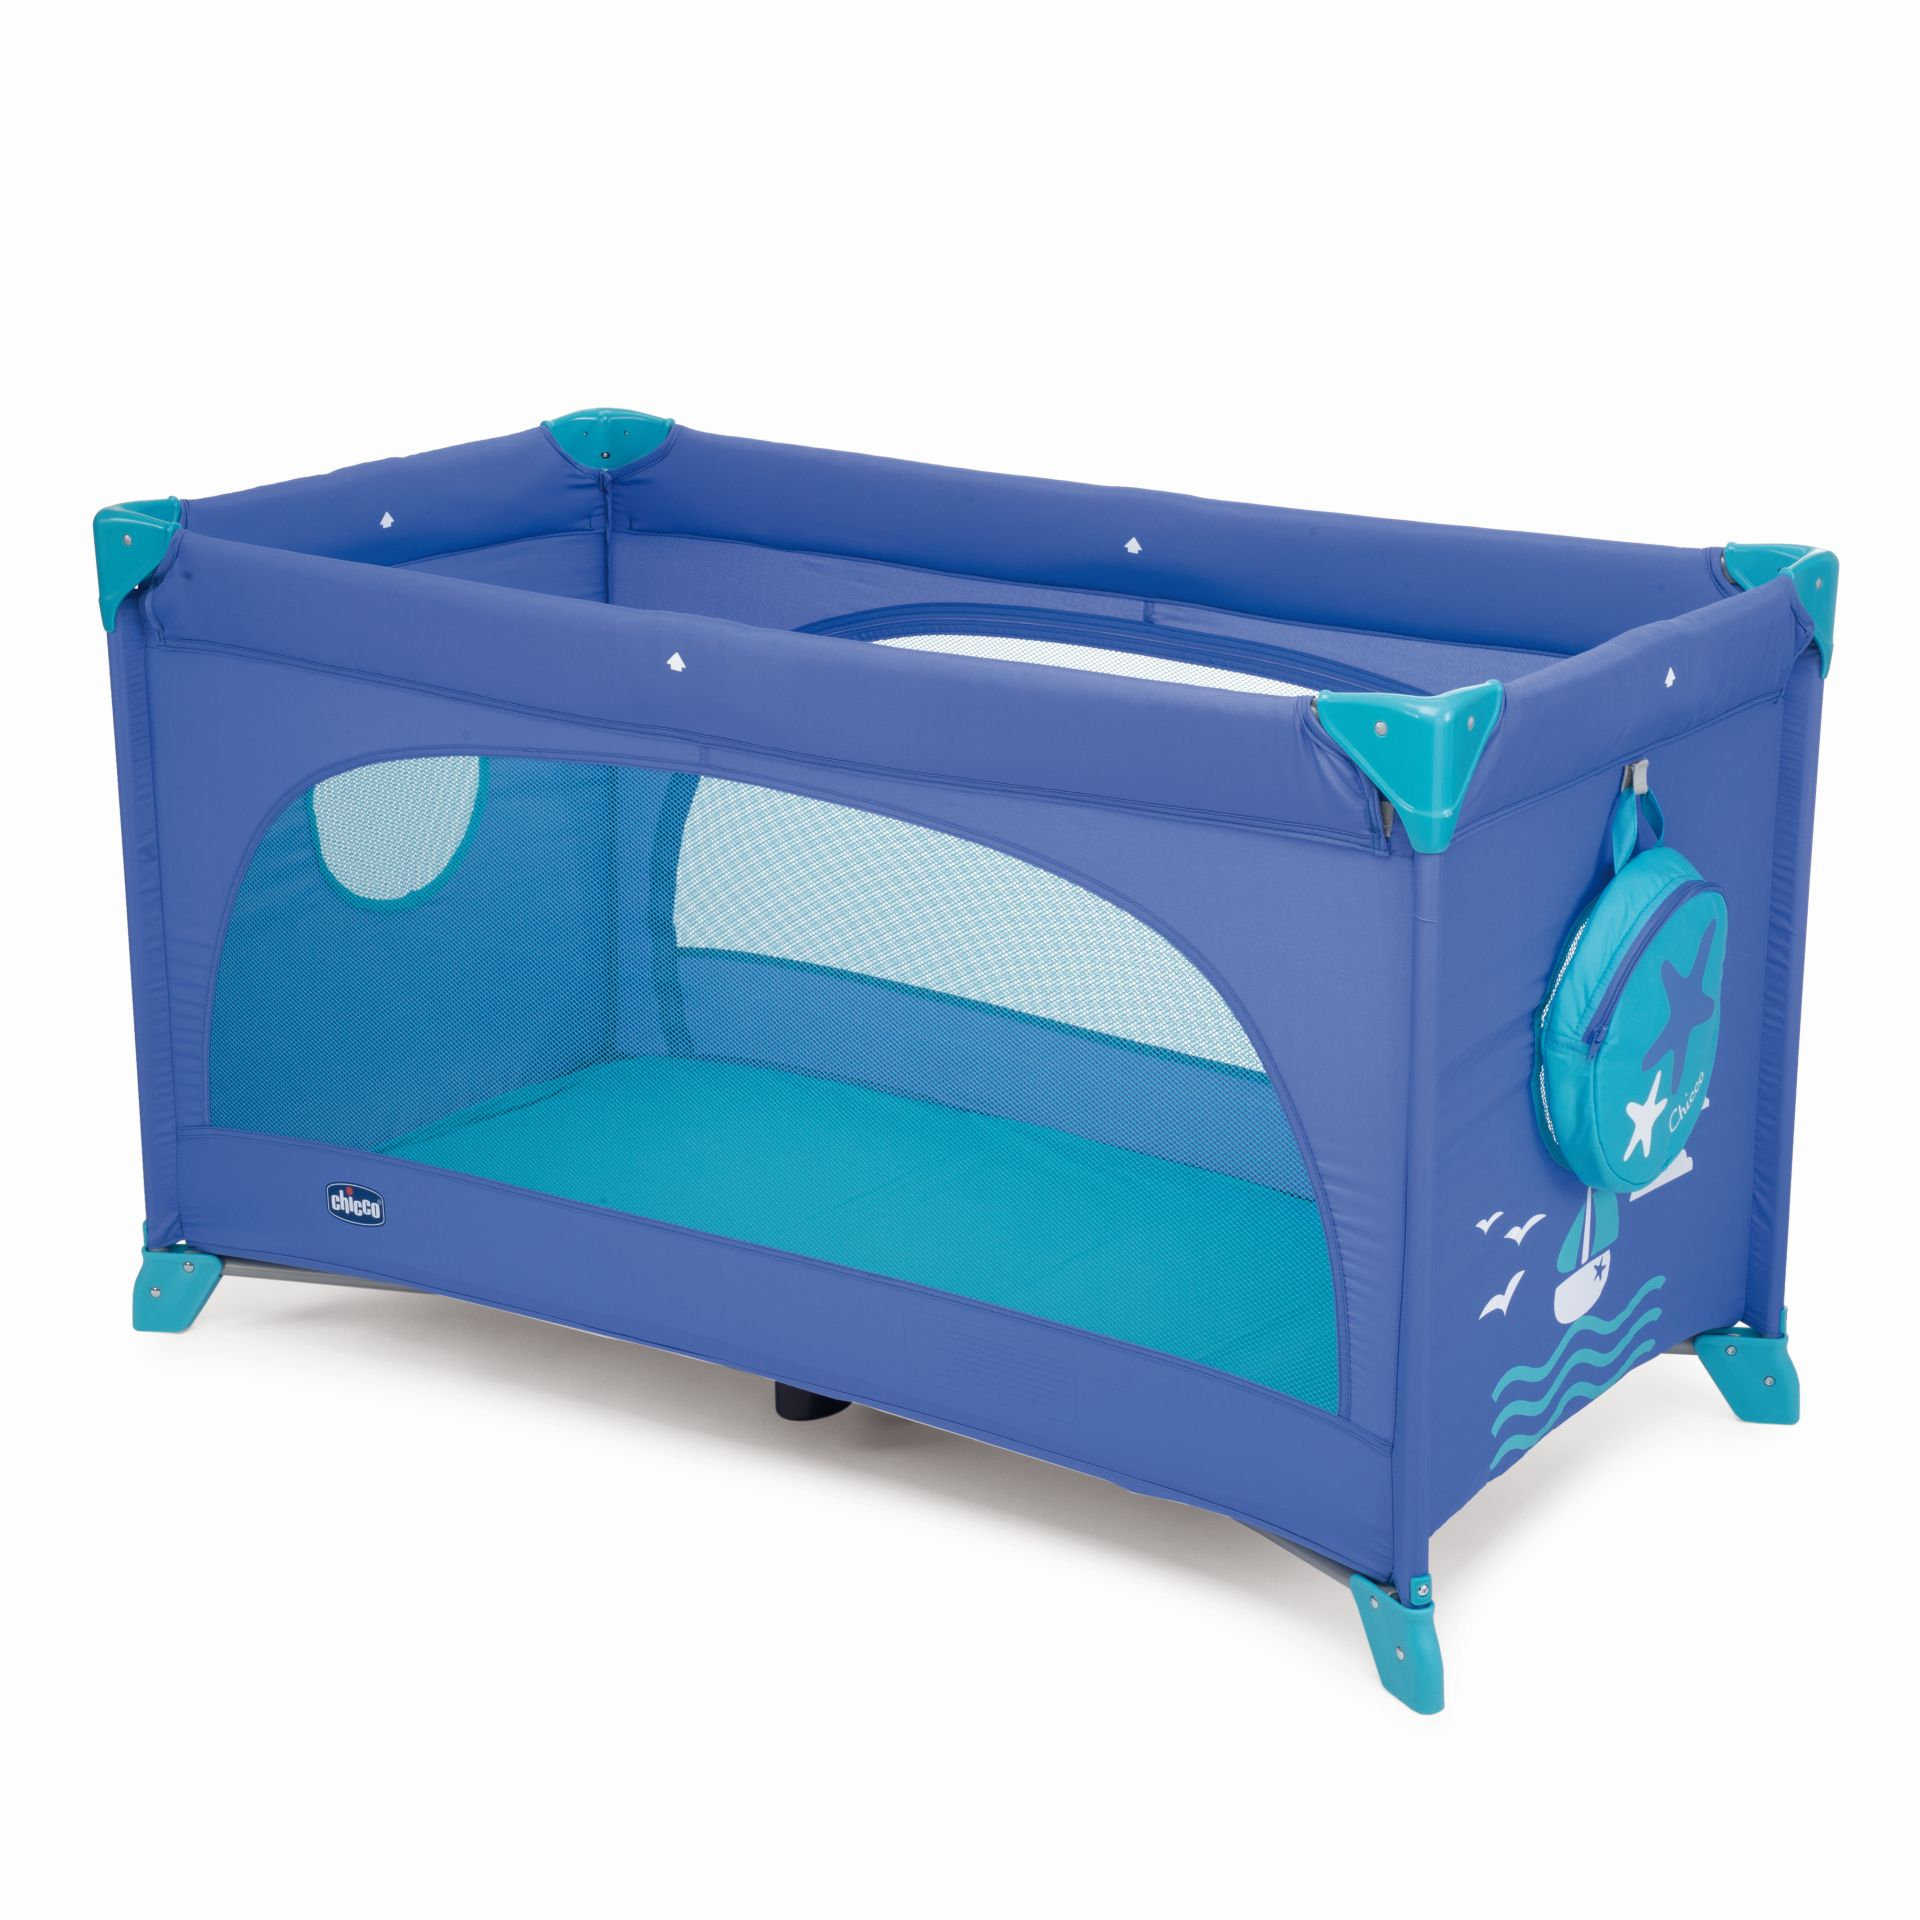 Baby bed for travel - Chicco Travel Cot Easy Sleep Marine 2017 Large Image 1